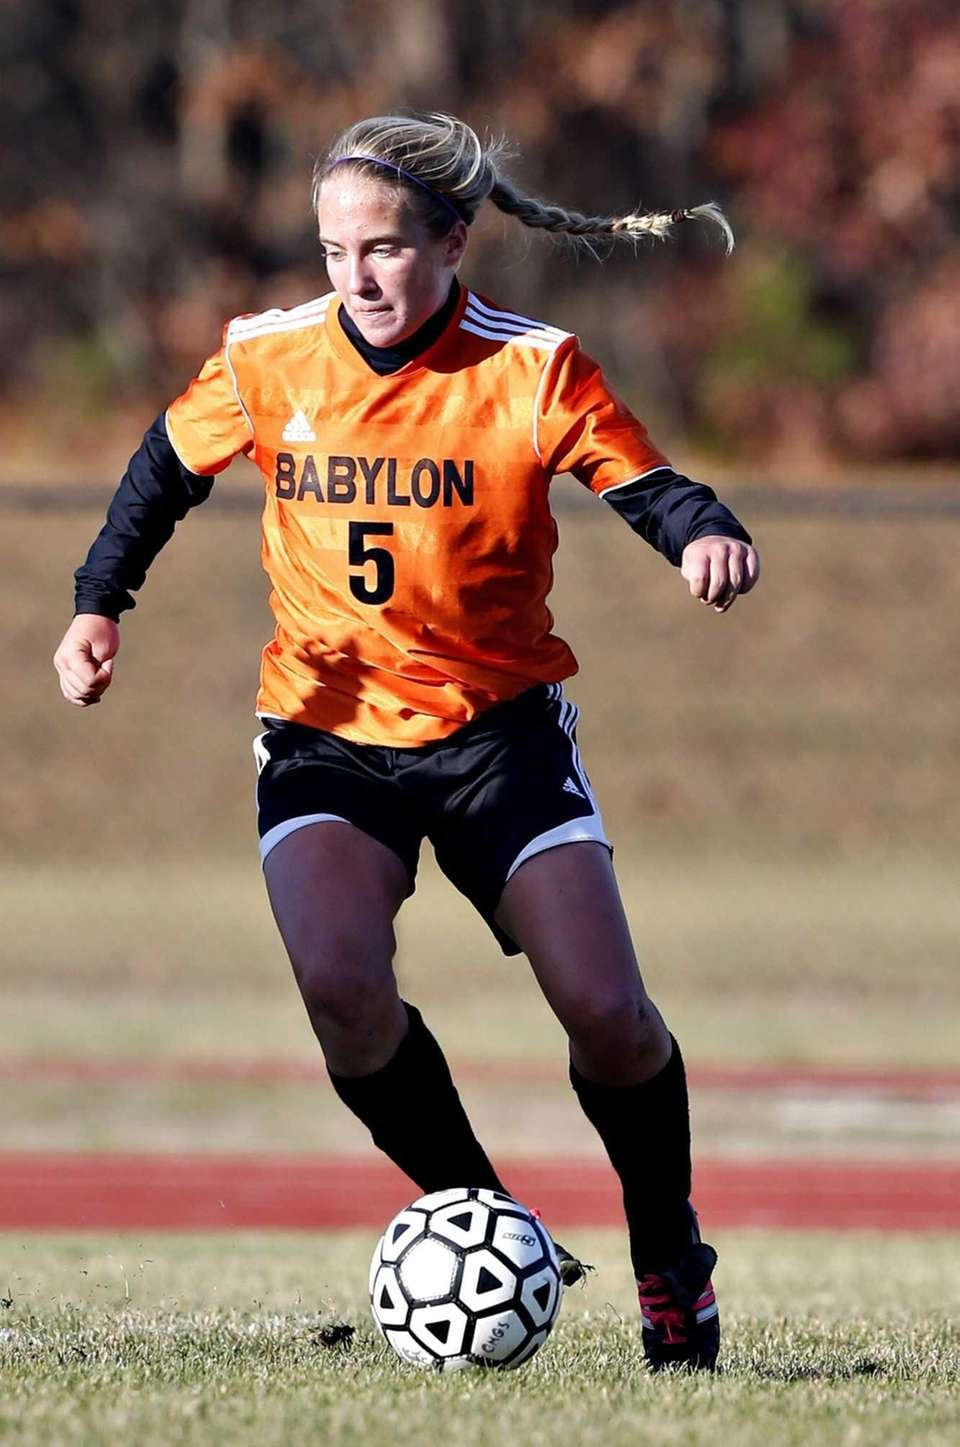 Babylon's Shelby Fredericks. (Nov. 9, 2012)